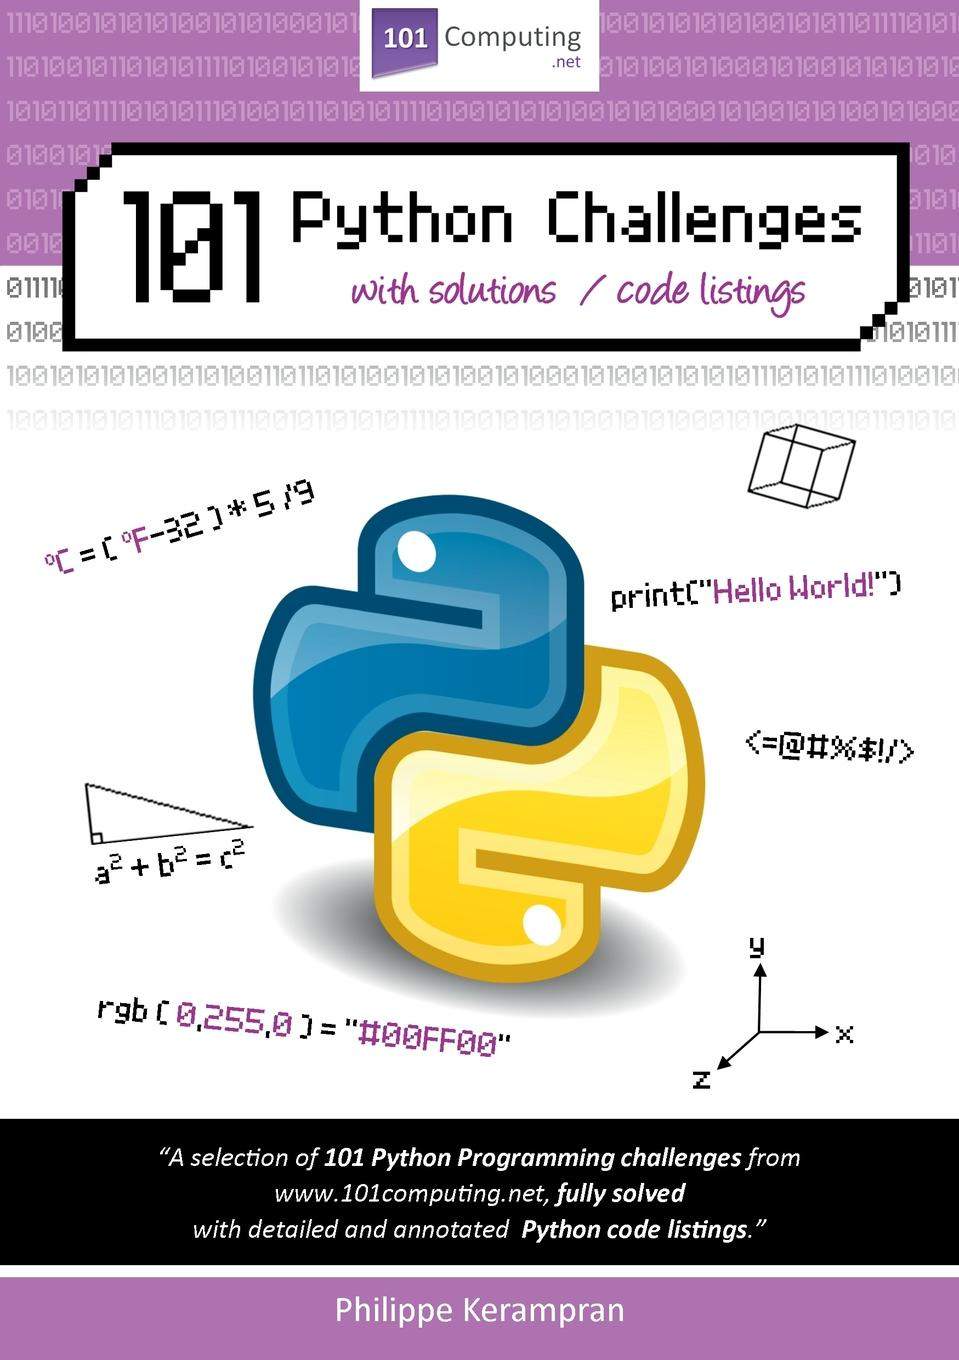 Philippe Kerampran 101 Python Challenges with Solutions / Code Listings adam stewart python programming python programming for beginners a comprehensive guide to learnings the basics of python programming